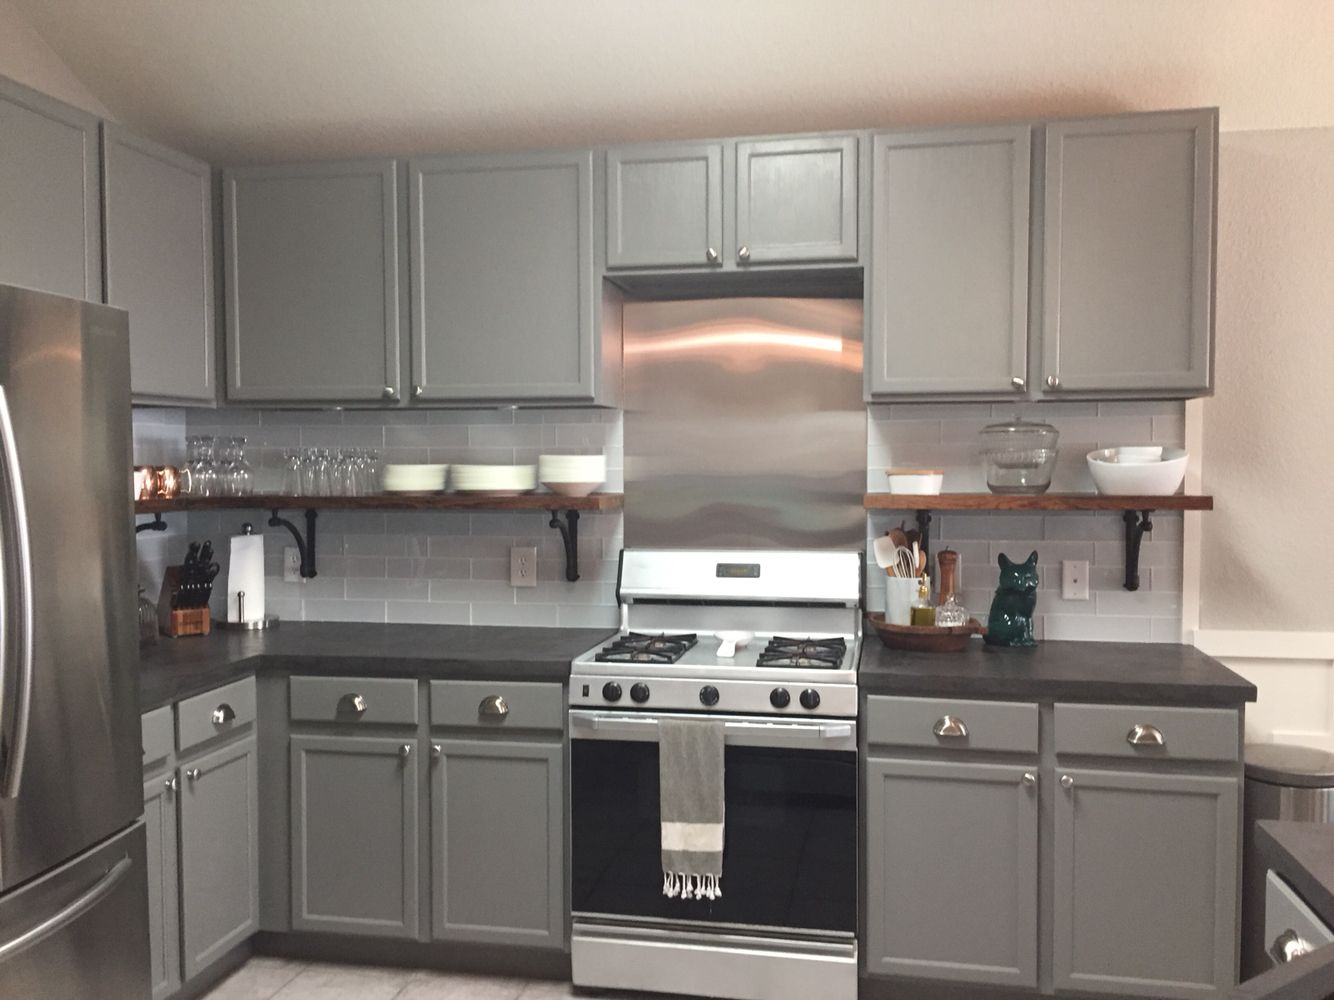 Updated Kitchen My Updated Kitchen As Of May 2015 With Ardex Feather Finish